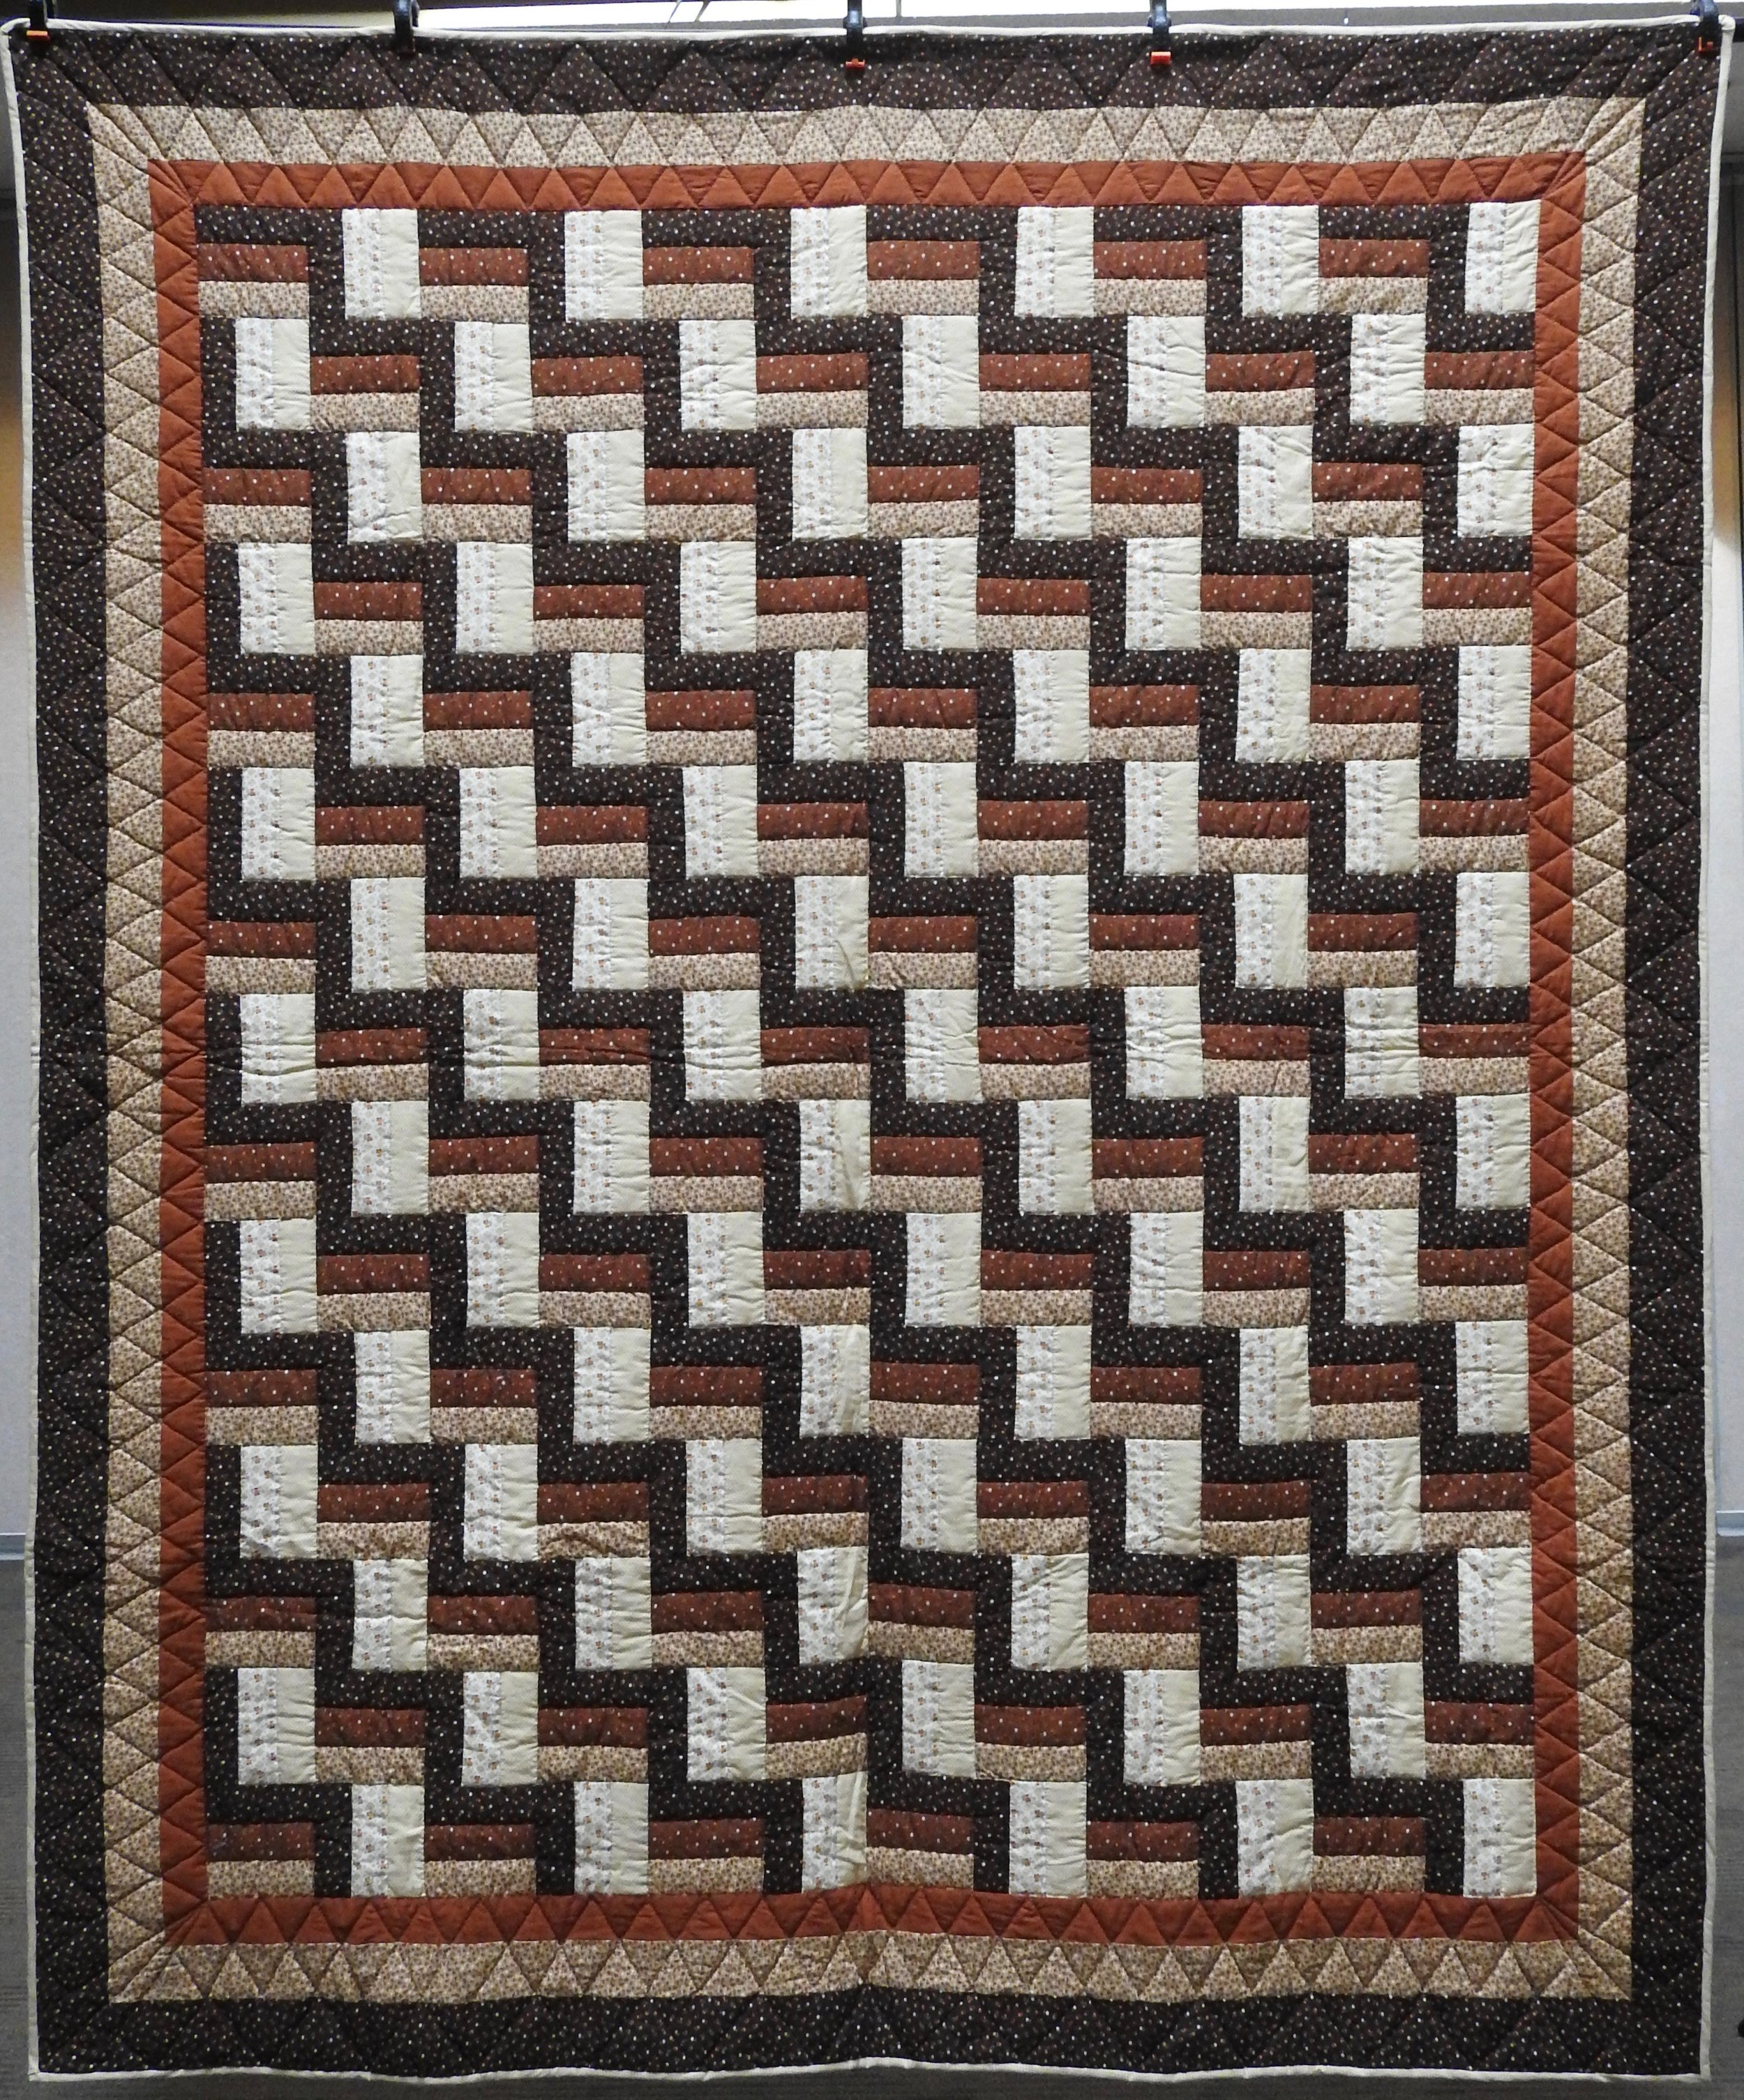 Woodsy Zig Zag 1, Pieced, Hand Quilted, donated by Lias Graber, 77 x 93